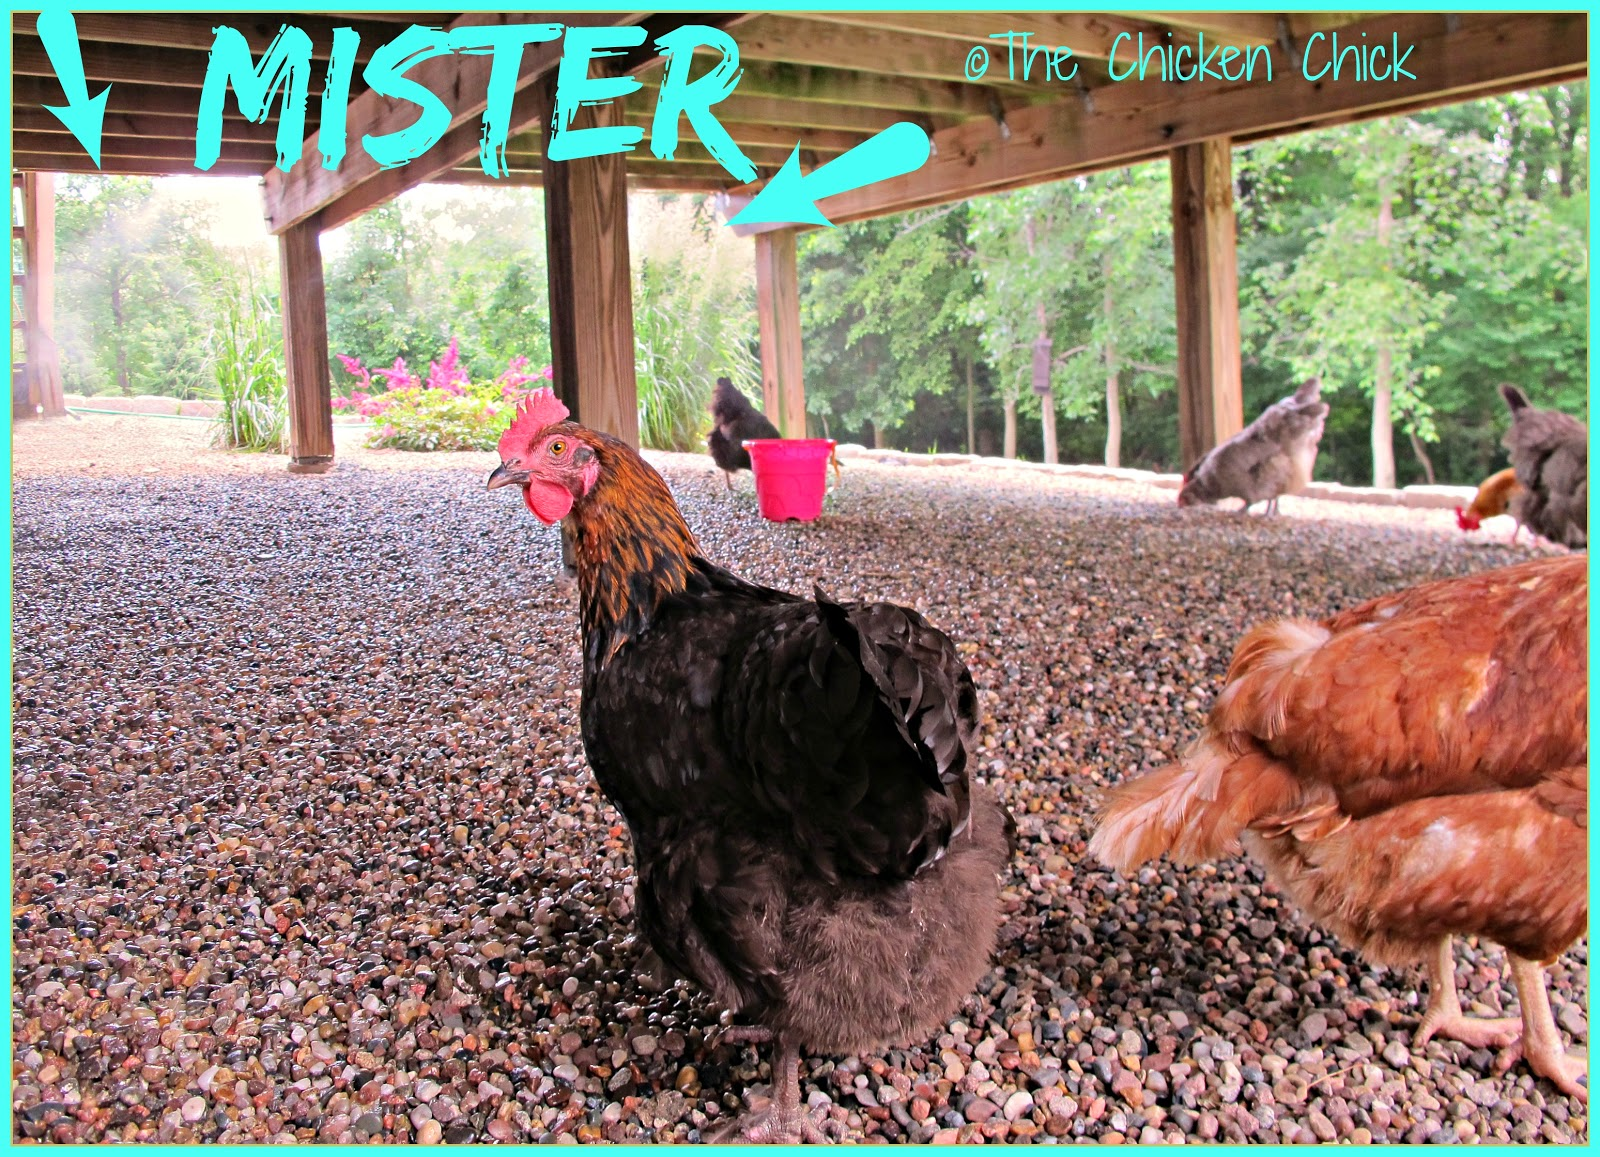 You can expect a temperature drop of 10-20° F in 40-80% humidity with a mister in the chicken yard.